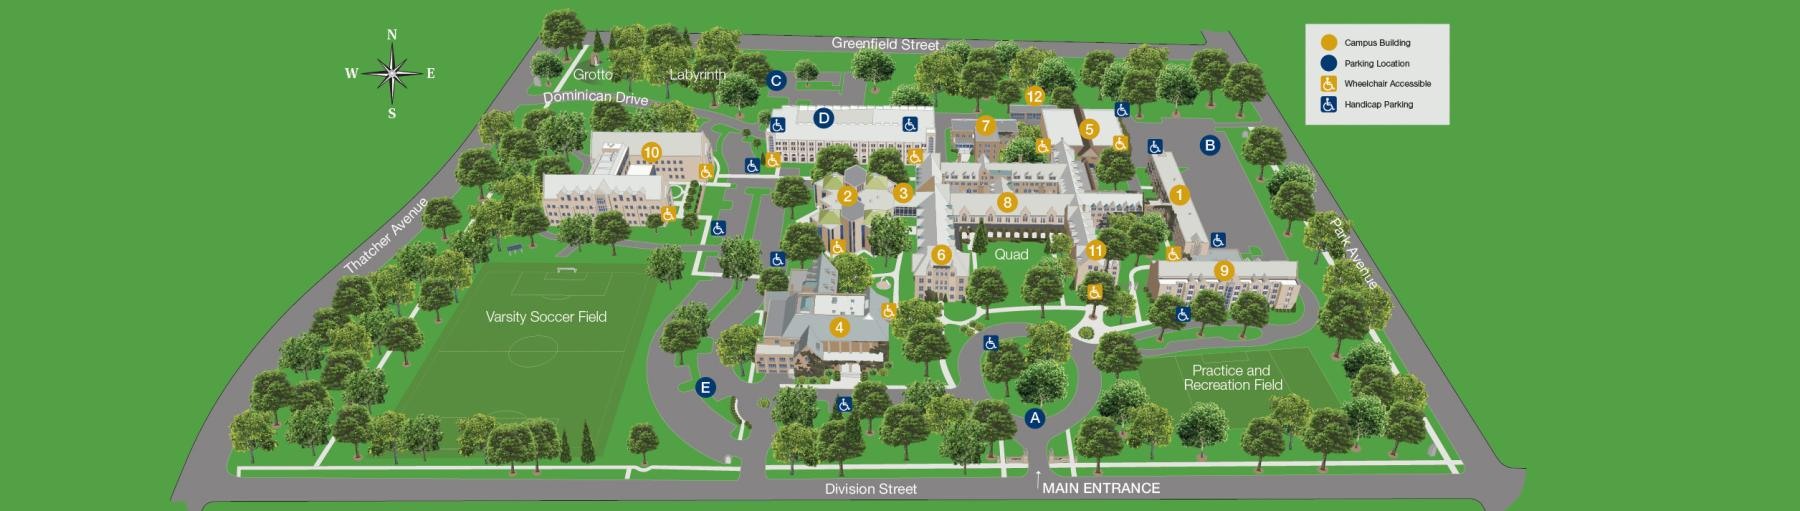 Directions And Campus Map Dominican University